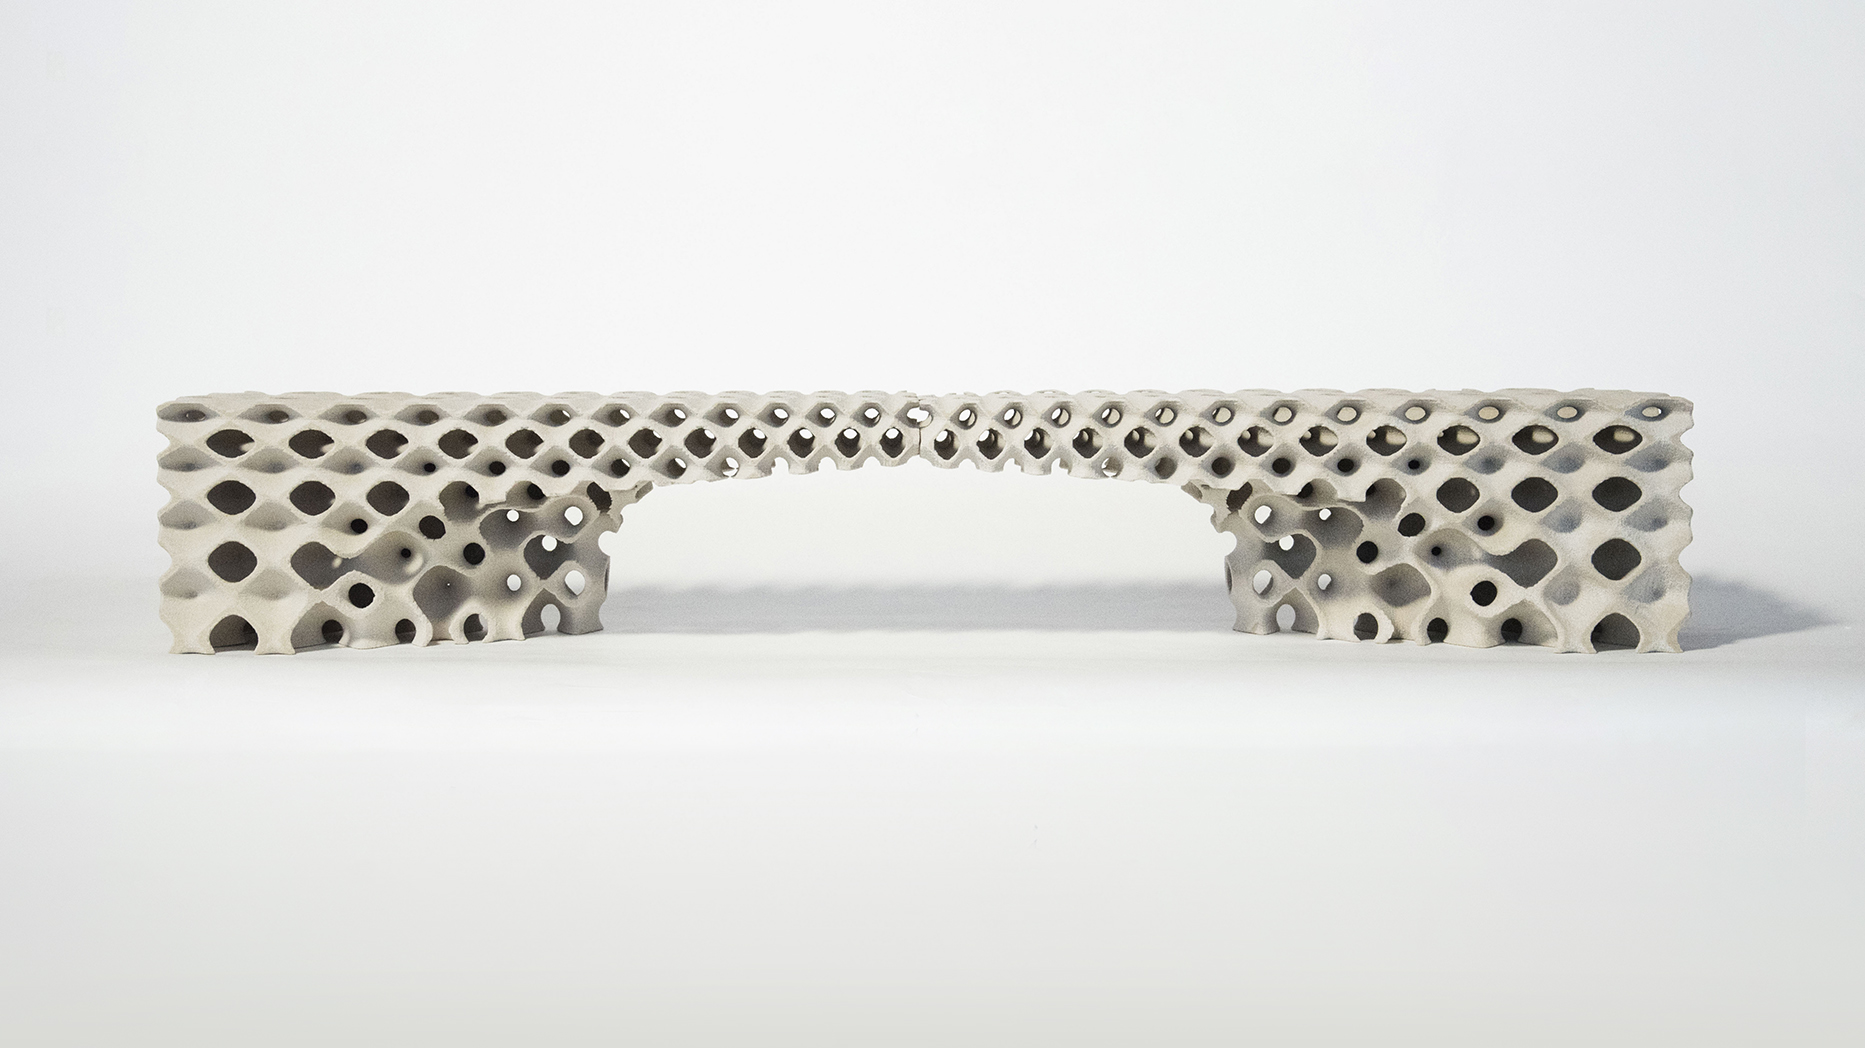 3D printed lintel with micro-structural graded porosity (Jetana Ruangjun, Angelo Yoo)